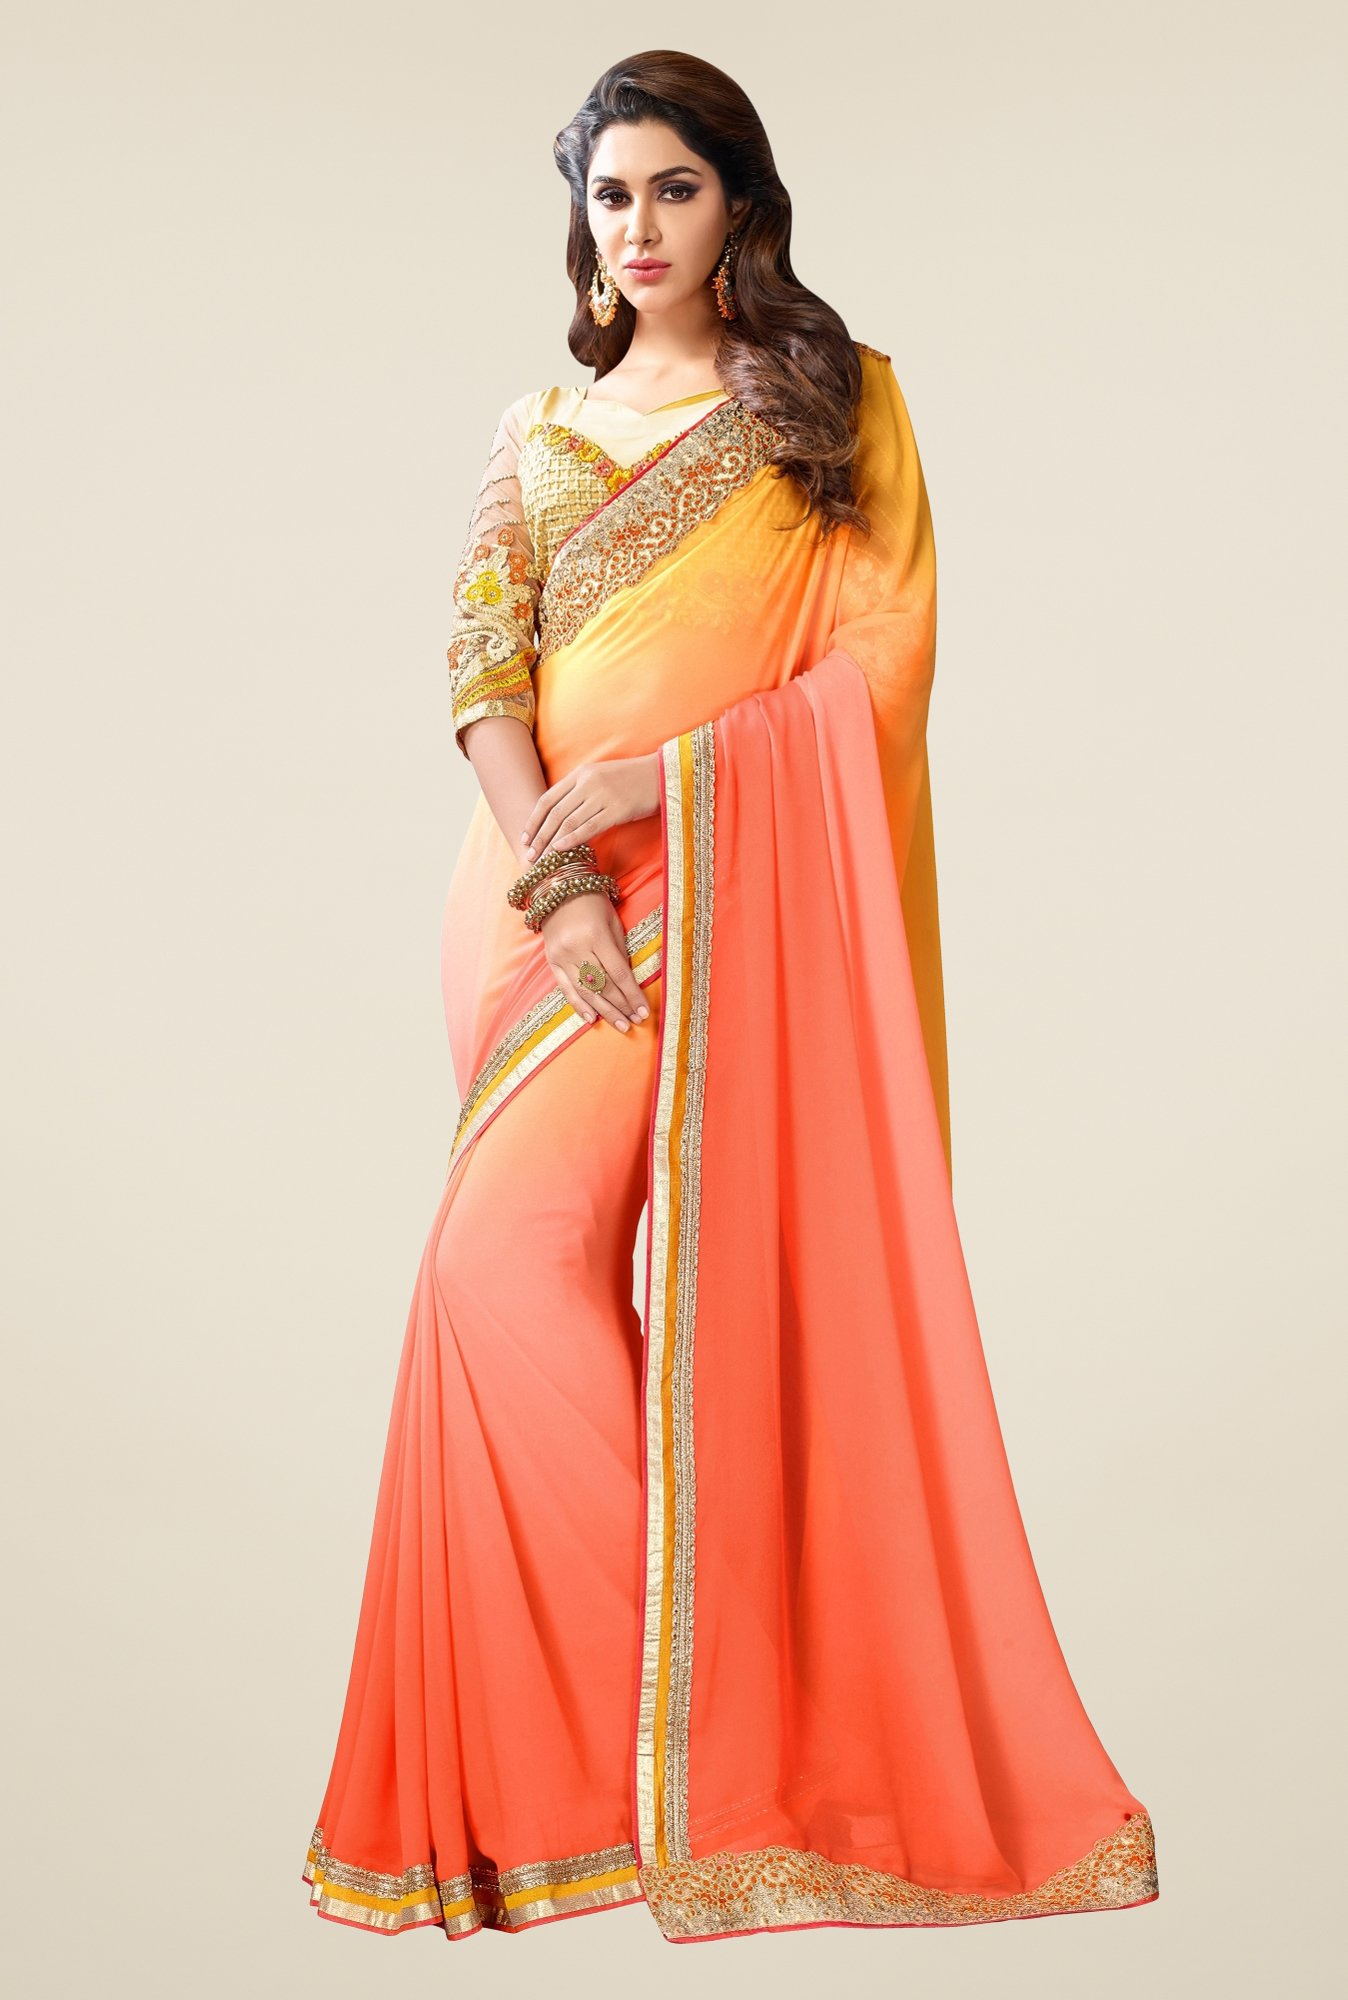 Triveni Pretty Peach Bamber Georgette Saree